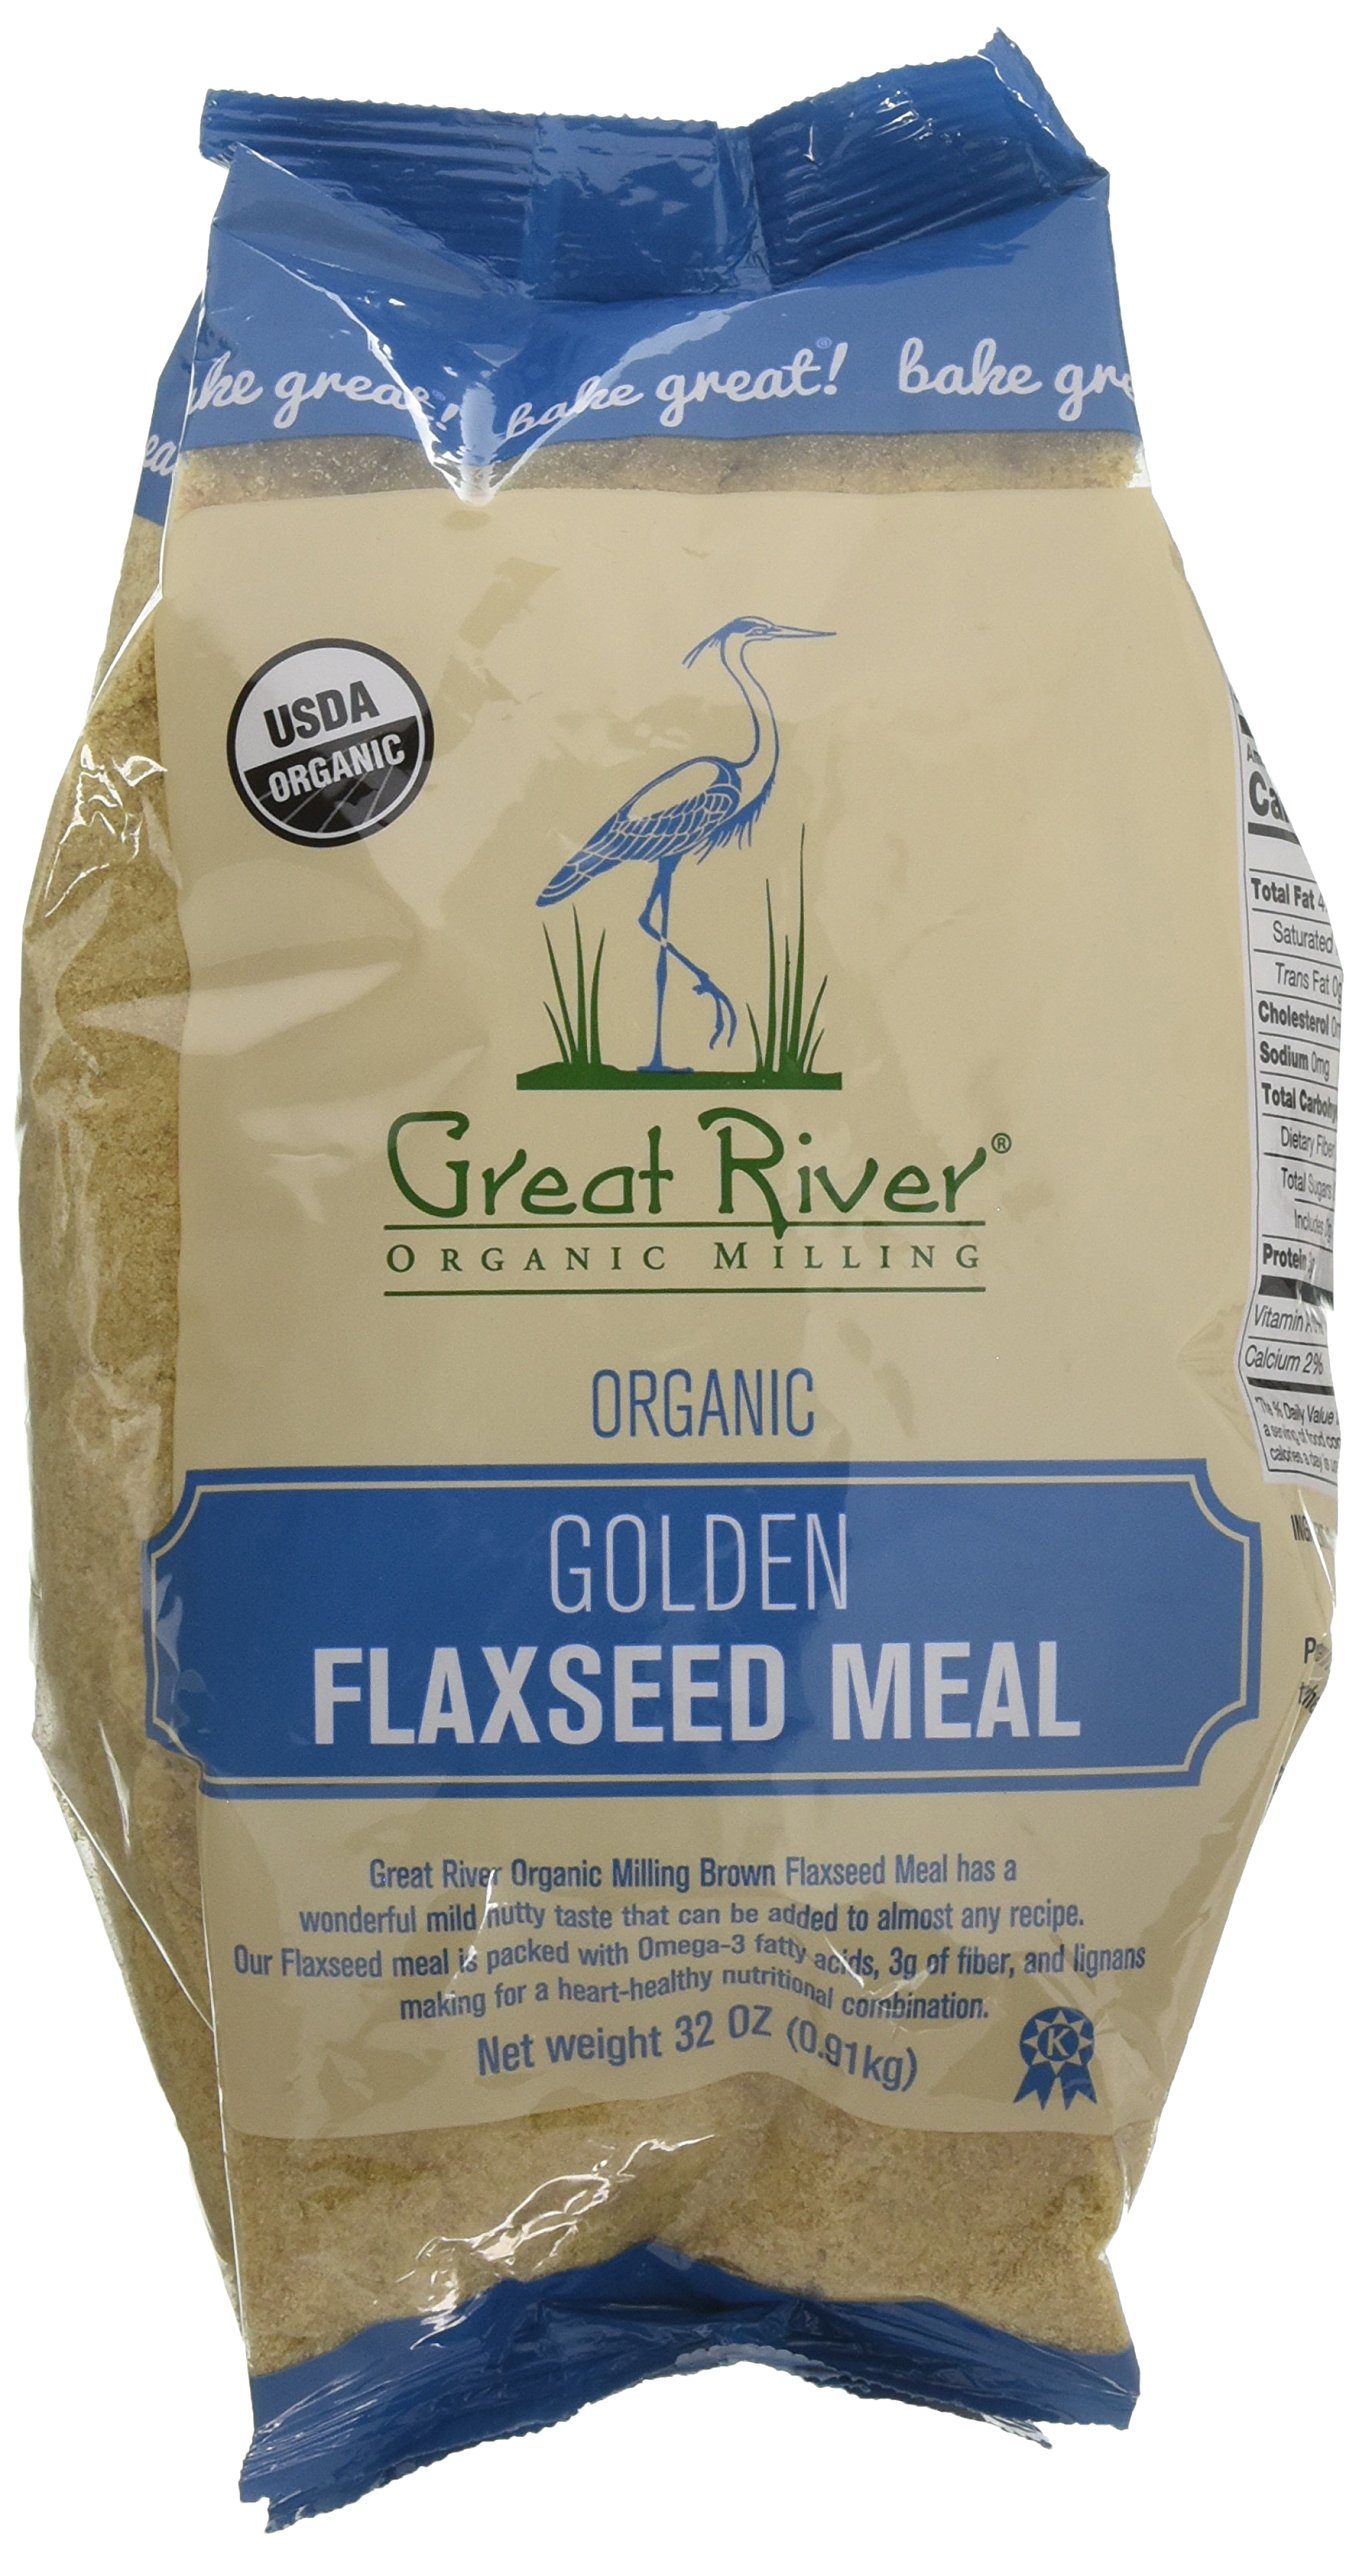 Great River Organic Milling Golden Flaxseed Meal, 32 Ounce by Great River Organic Milling (Image #1)